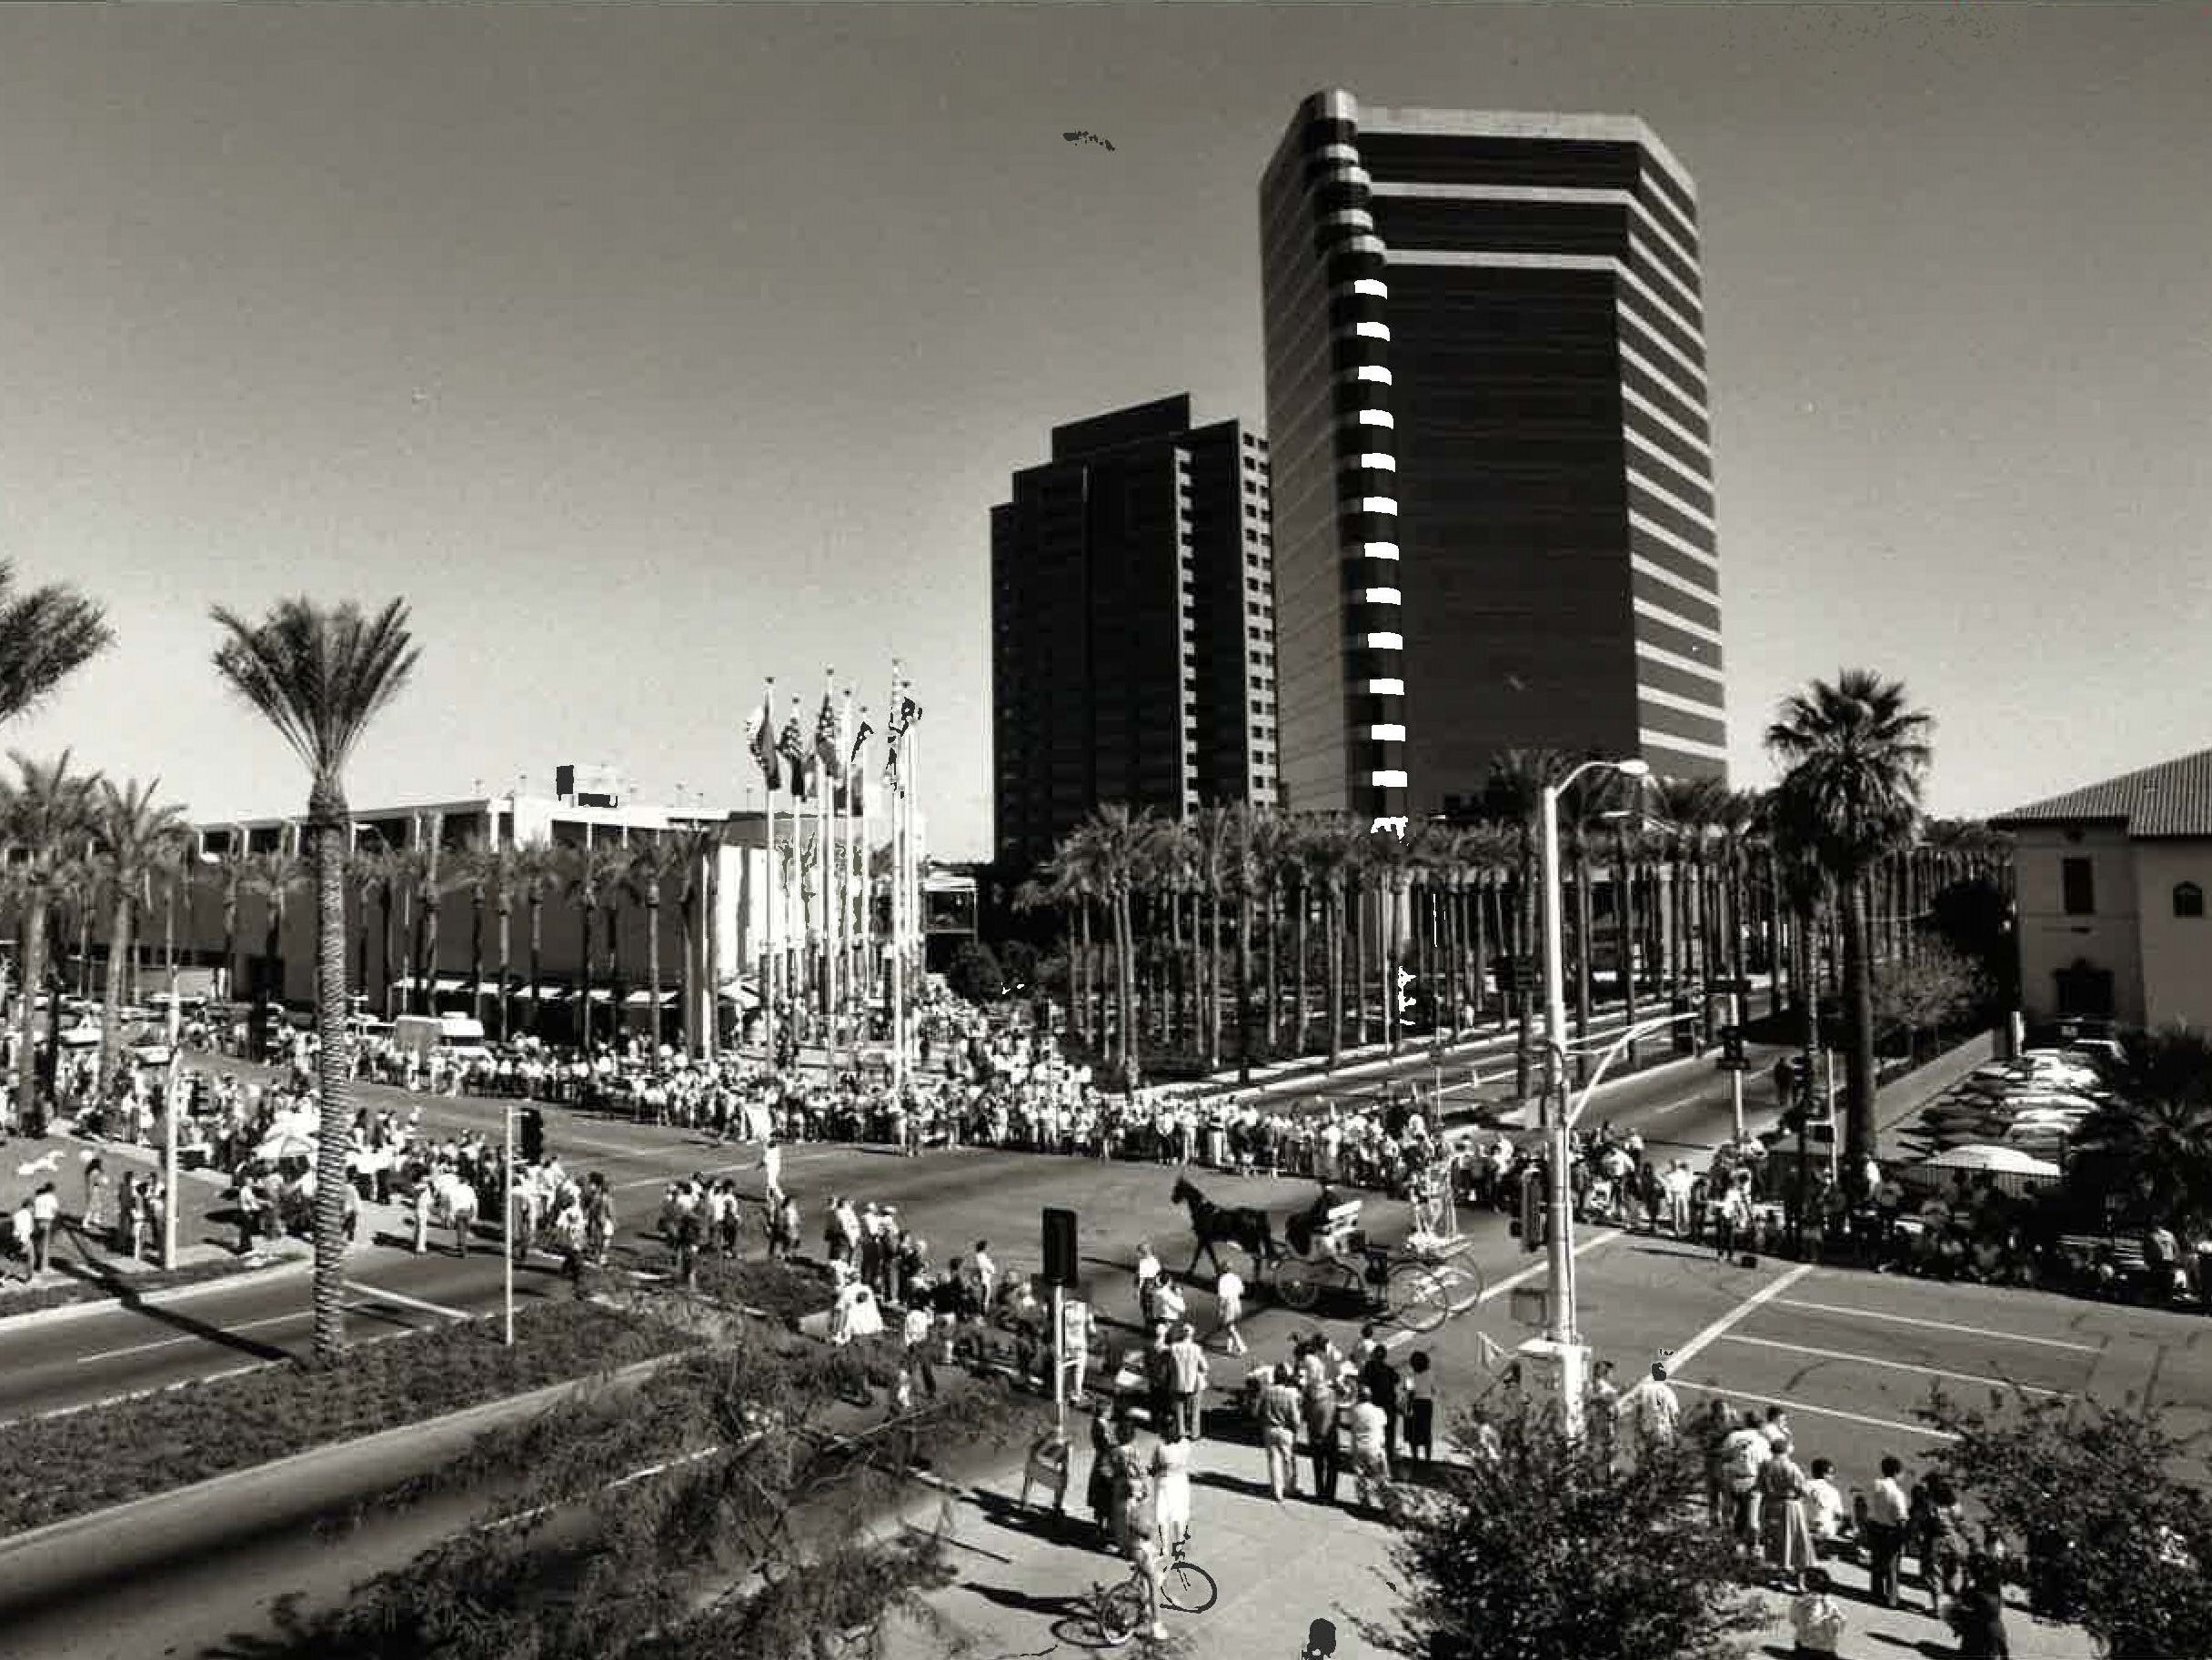 A parade passes Arizona Center during the opening festivities on November 15, 1990.